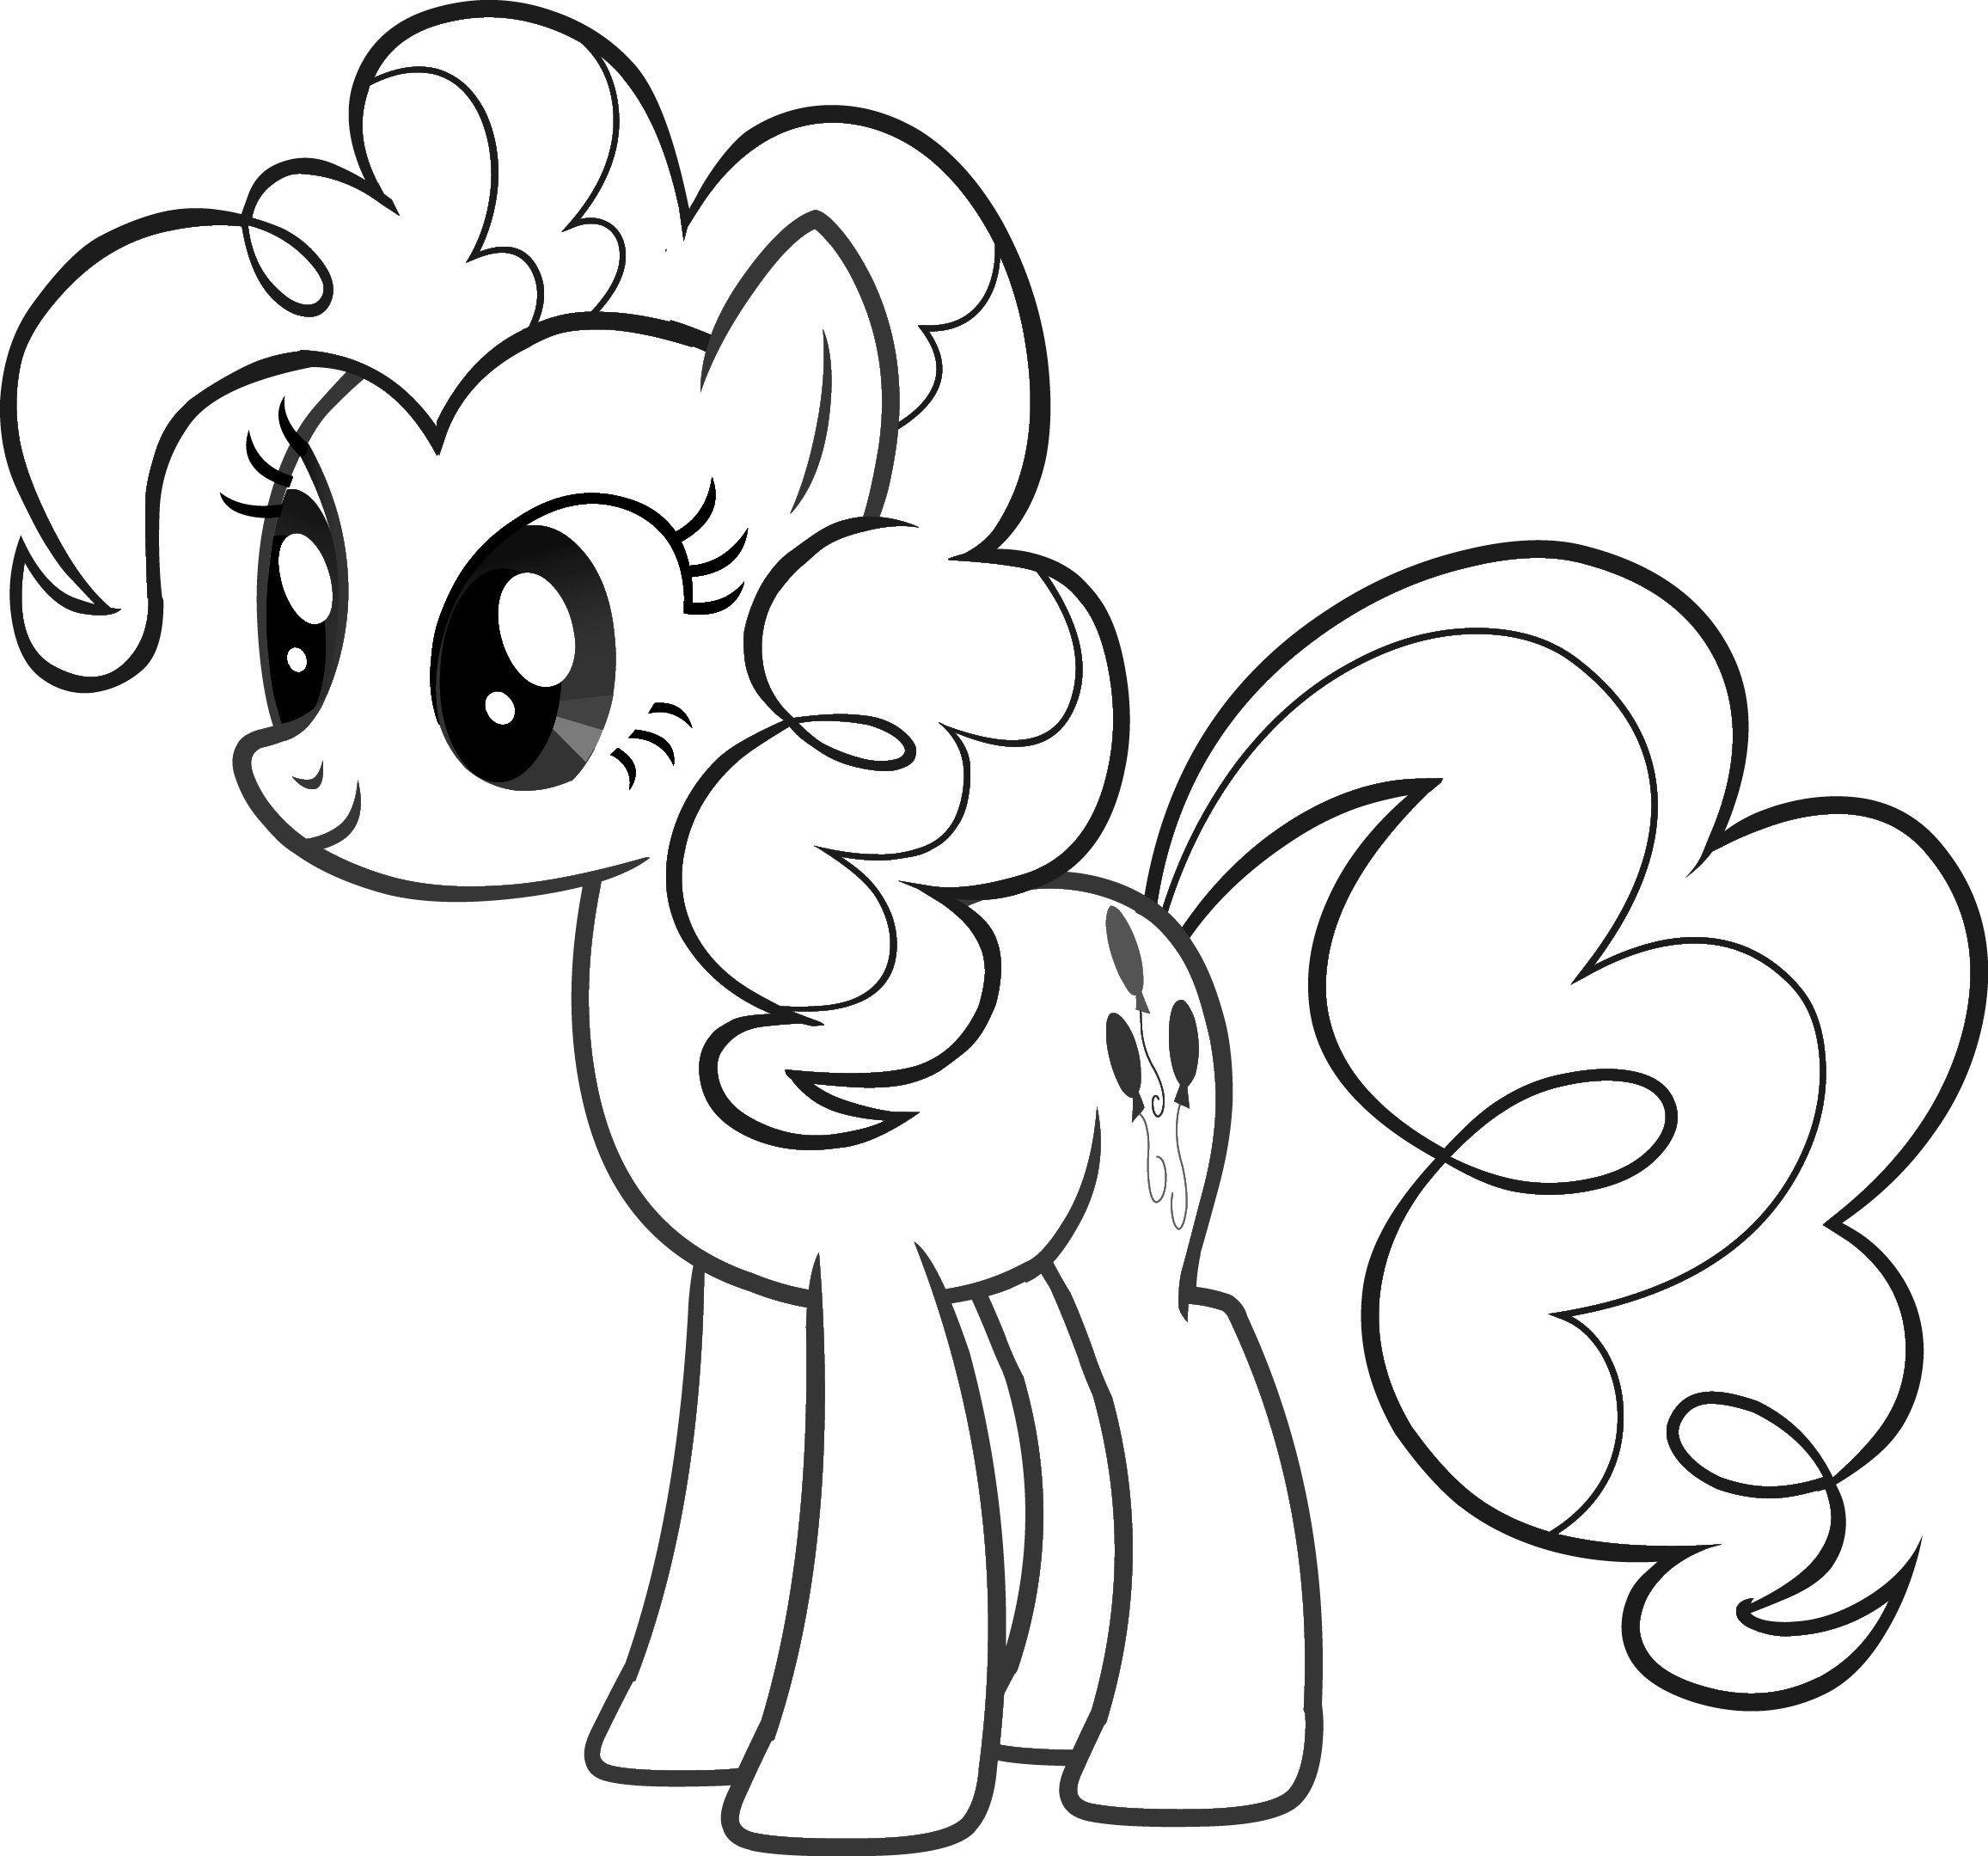 cartoon coloring cartoon character coloring pages to download and print for coloring cartoon